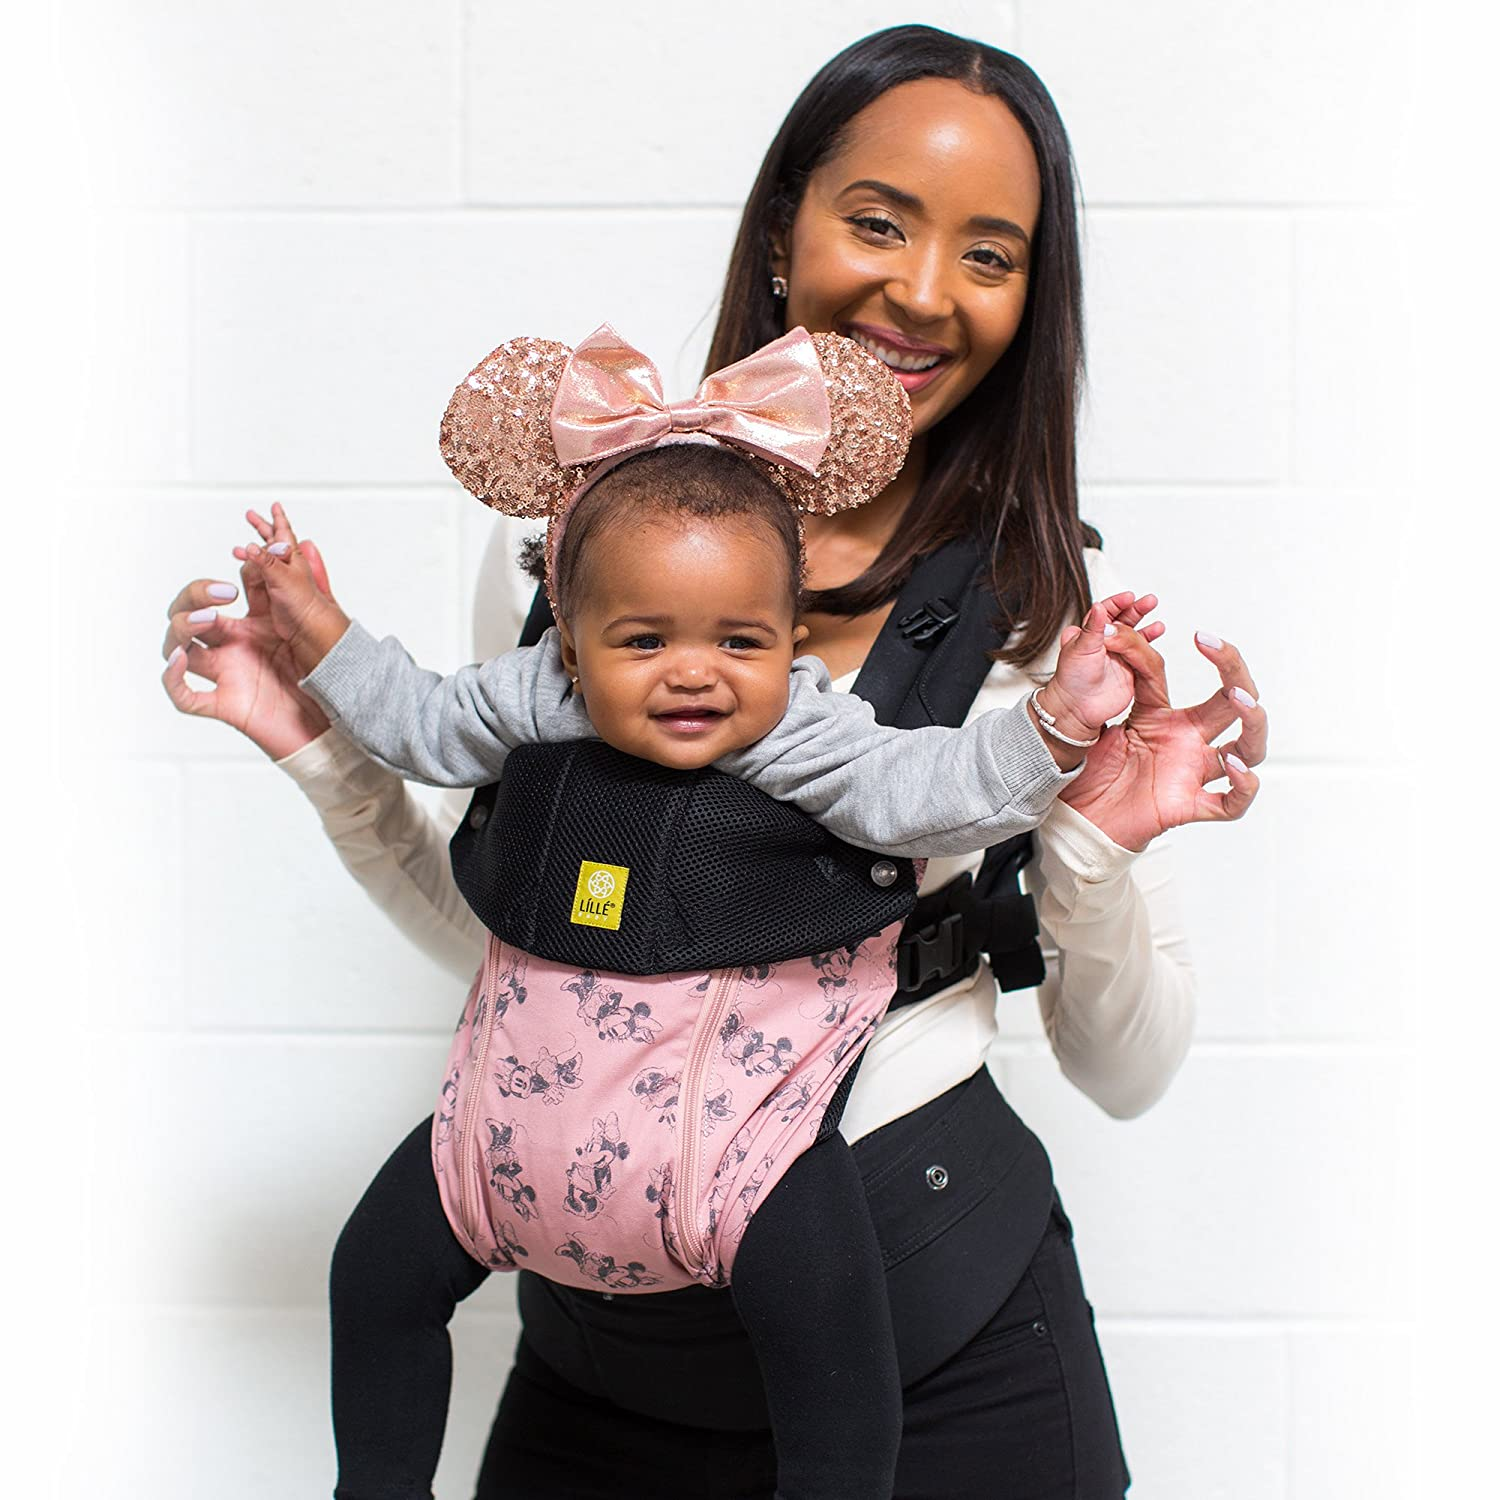 LÍLLÉbaby The COMPLETE All Seasons SIX-Position, 360° Ergonomic Baby & Child Carrier, Navy - Cotton Baby Carrier, Comfortable and Ergonomic, Multi-Position Carrying for Infants Babies Toddlers LILLEbaby SC-3S-210